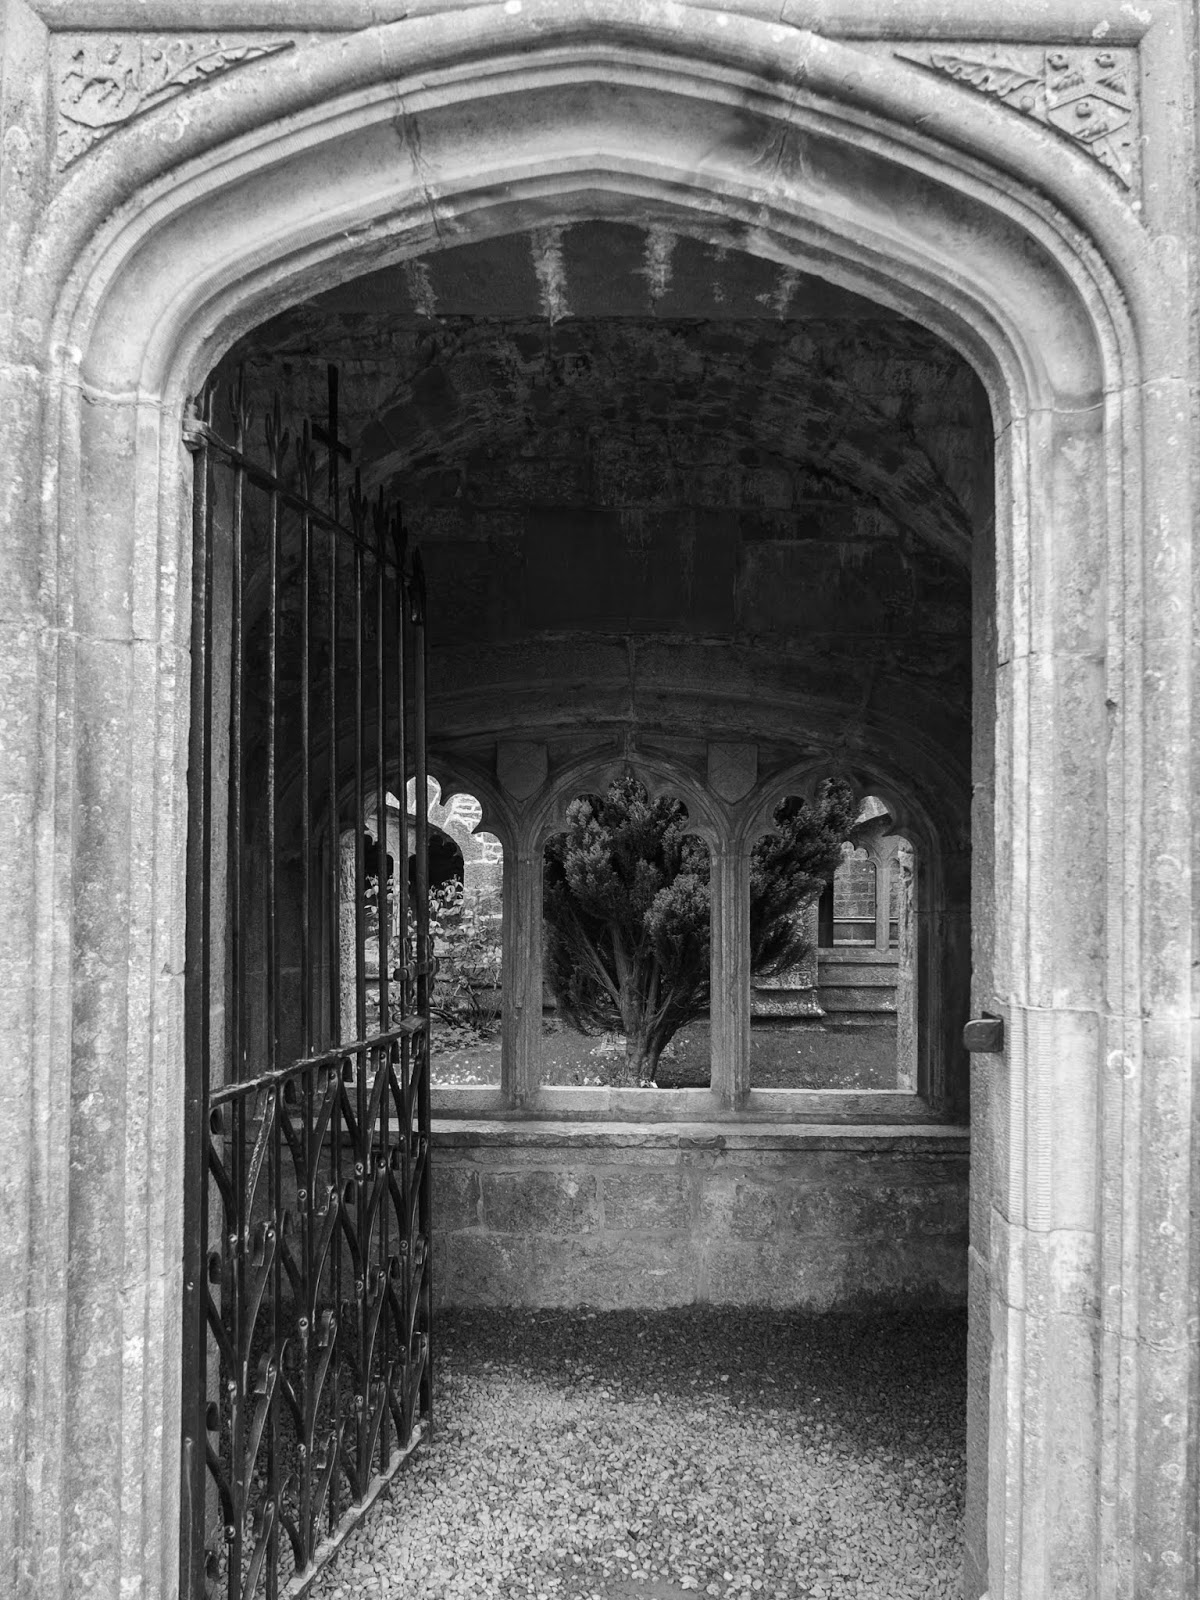 An open gate leading into an Abbey cloister square in Adare, Co.Limerick.